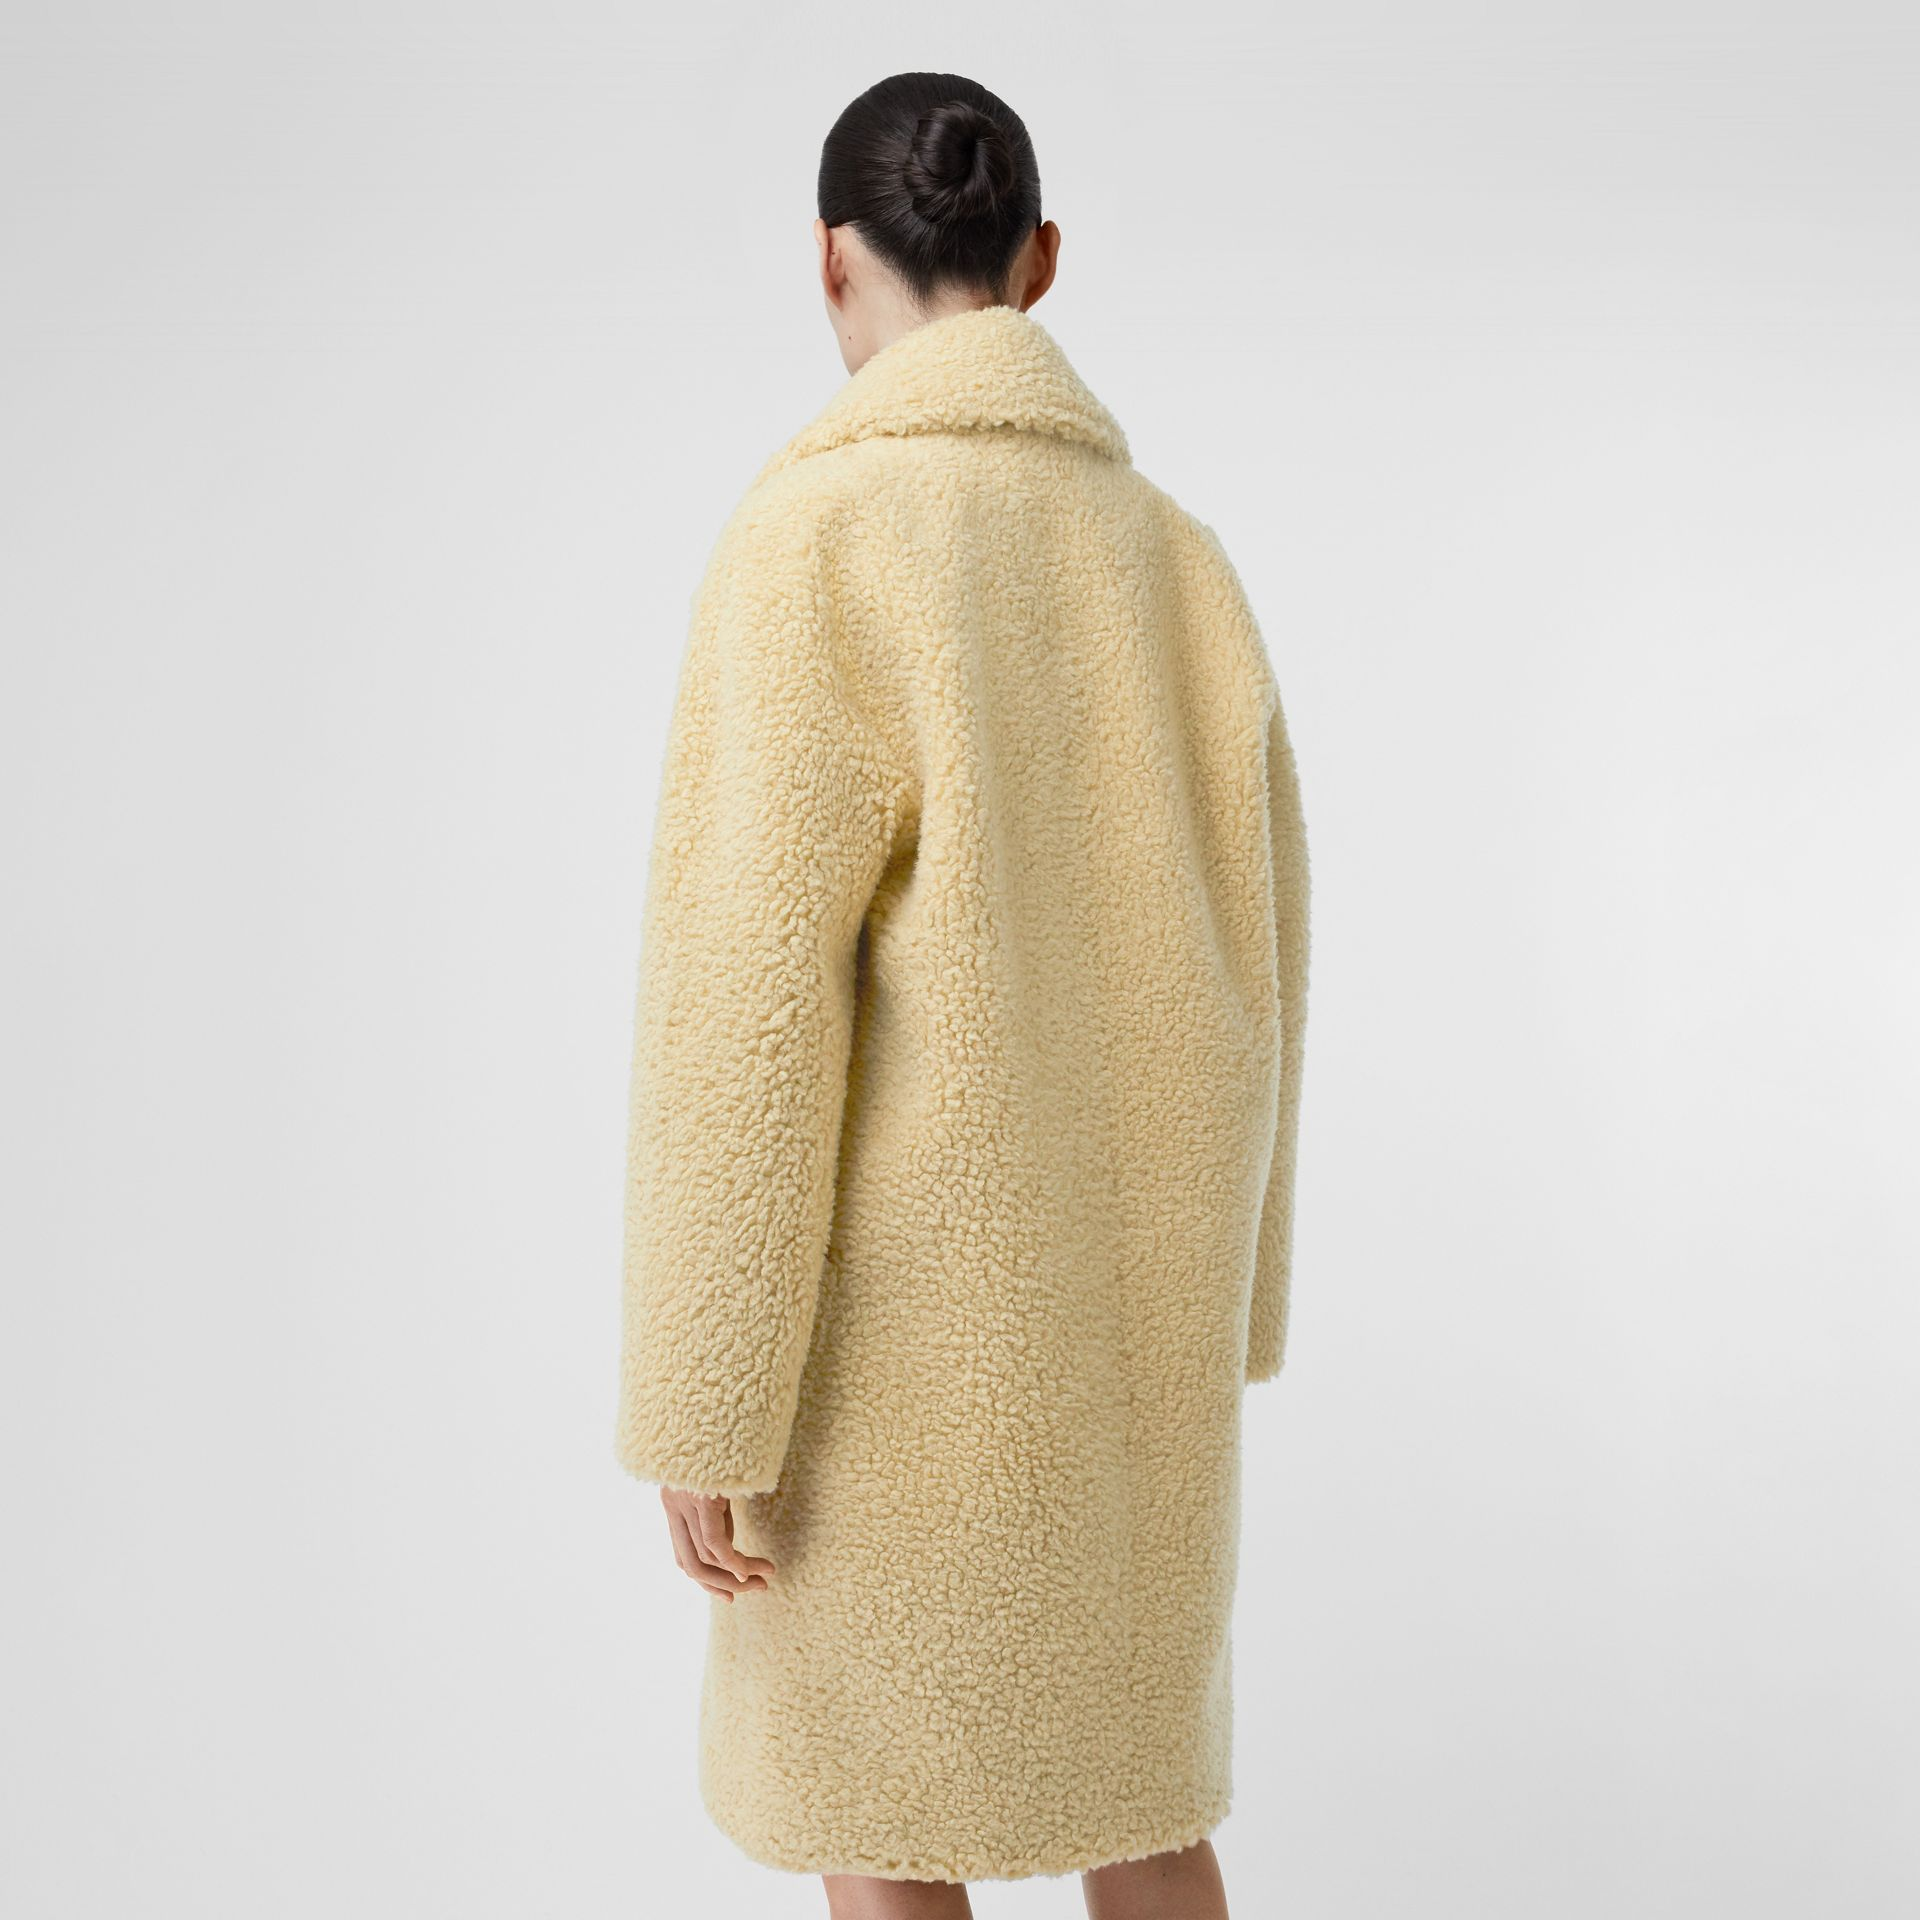 Faux Shearling Double-breasted Oversized Coat in Camomile - Women | Burberry United States - gallery image 2